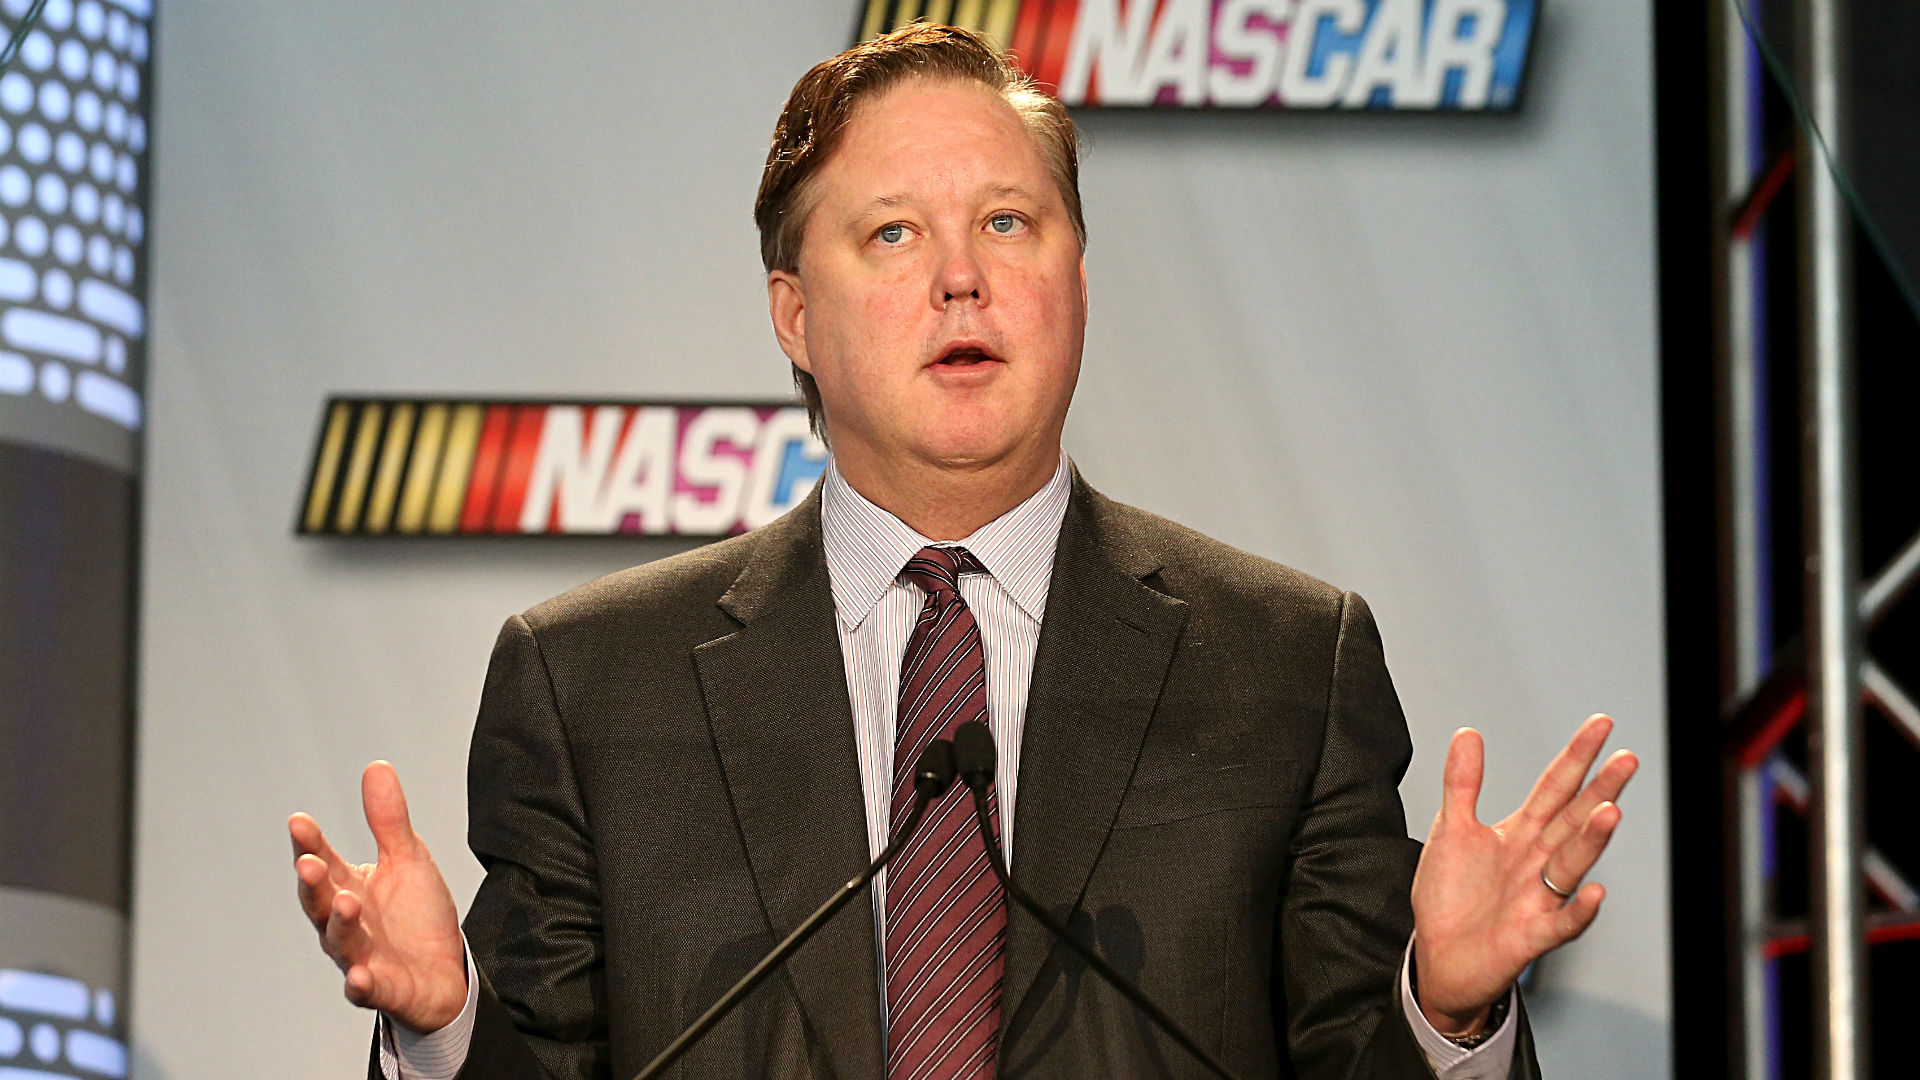 Brian France on Austin Dillon wreck: 'When we have a problem, we solve it'